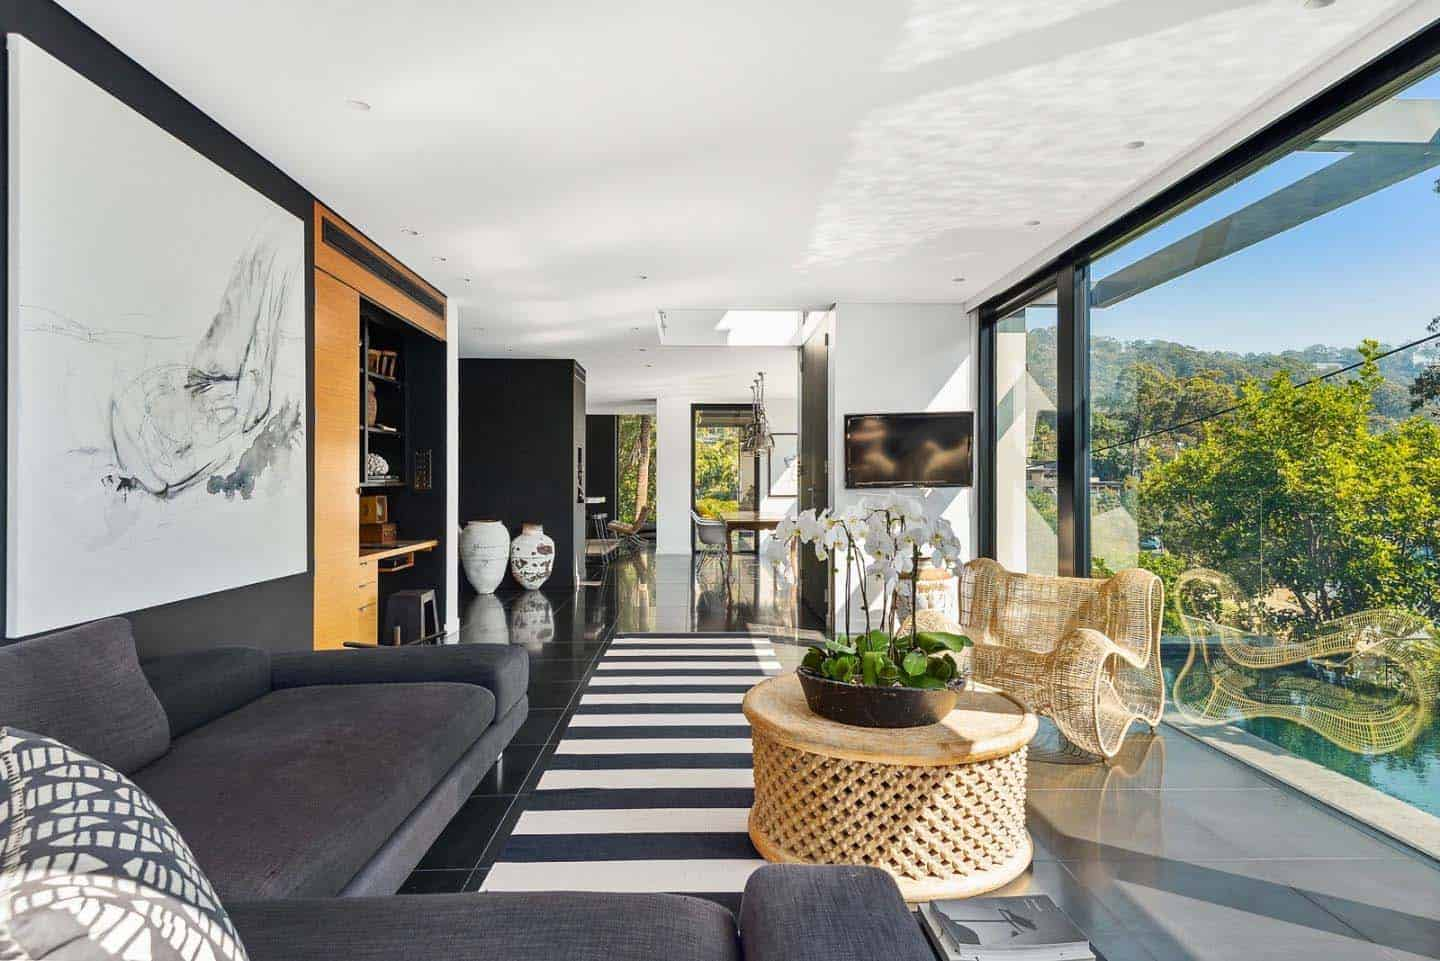 Breathtaking contemporary home of steel, glass and concrete in Australia